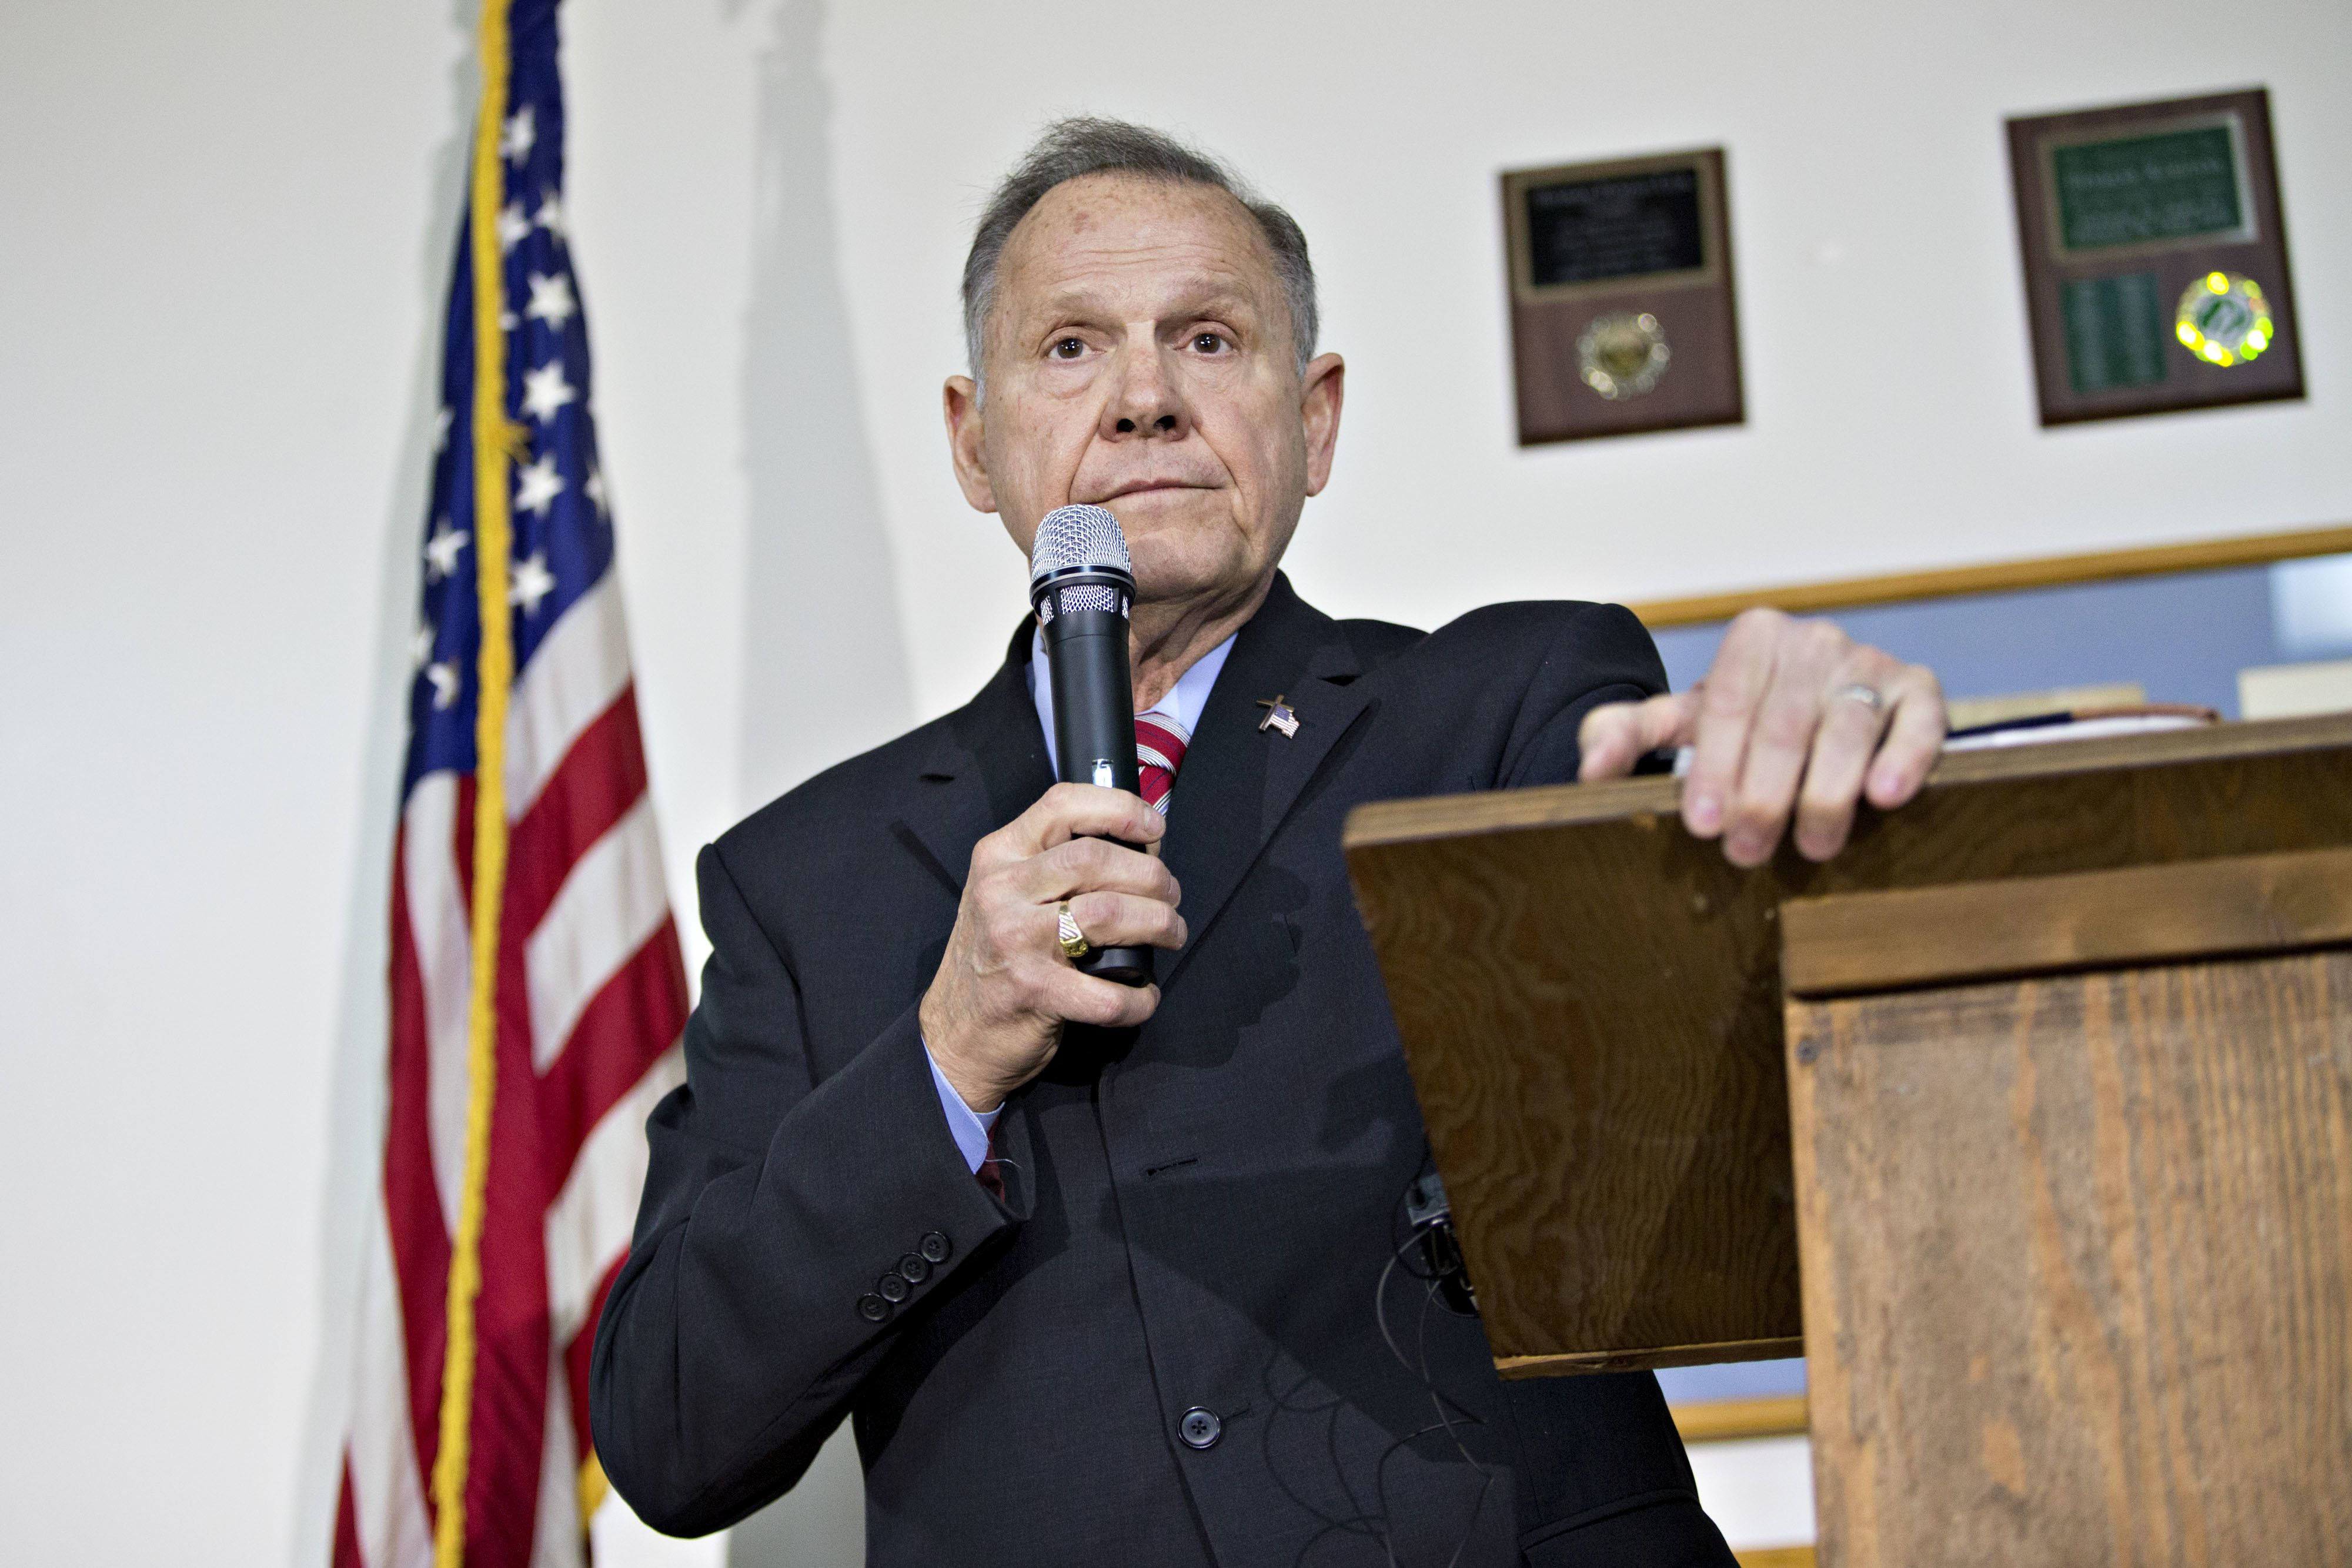 Roy Moore, Republican candidate for U.S. Senate from Alabama, pauses while speaking during a campaign rally in Henagar, Alaba